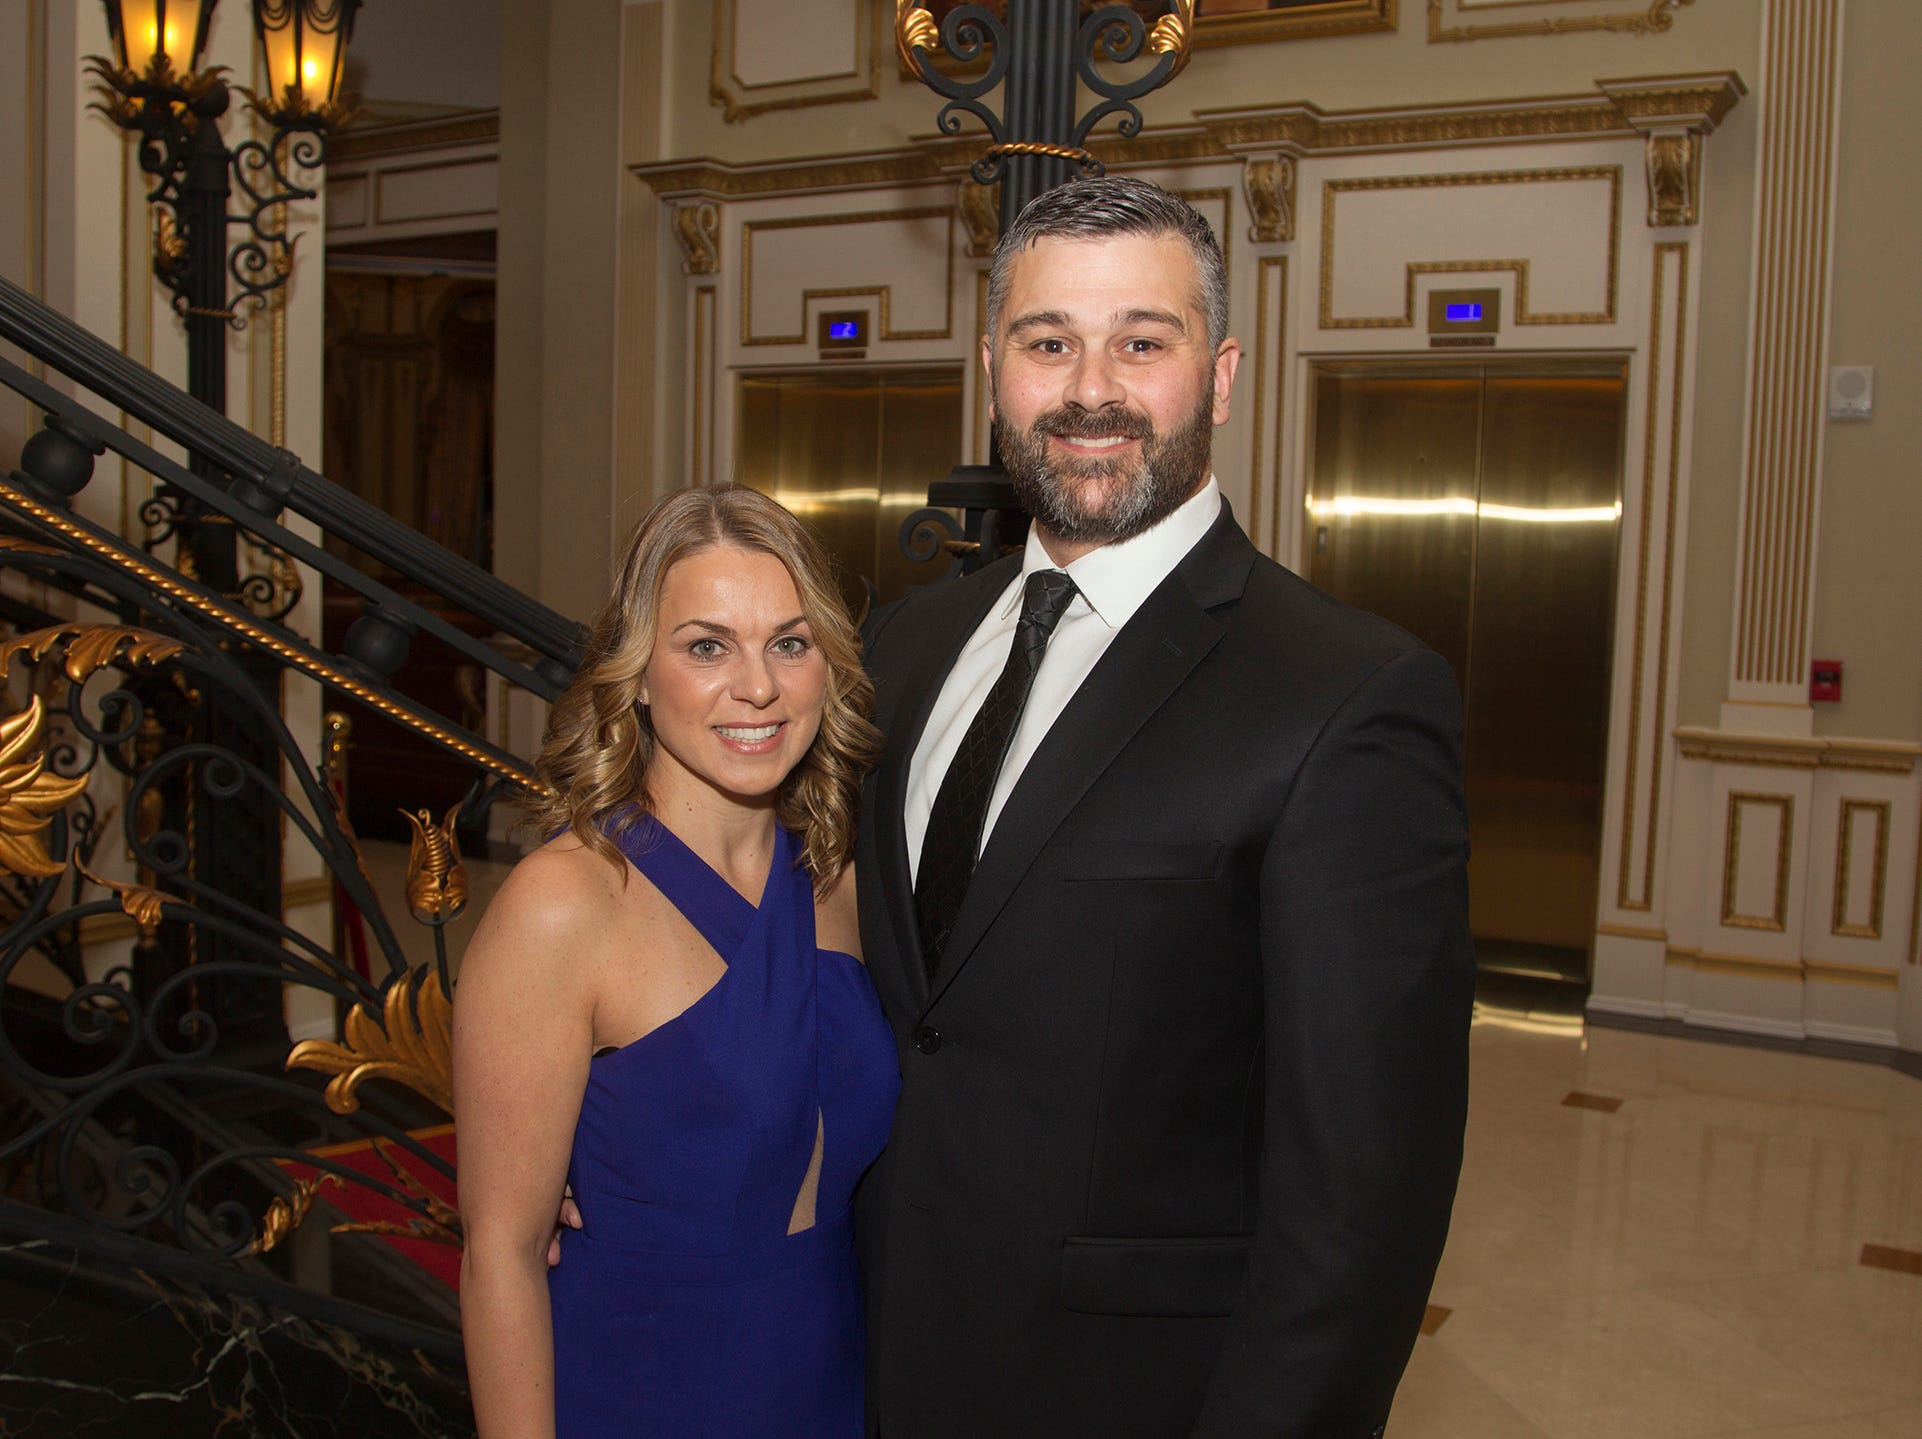 Leeah and Ryan Develez. The 72nd Annual Valley Ball gala at The Legacy Castle in Pompton Plains. 11/16/2018